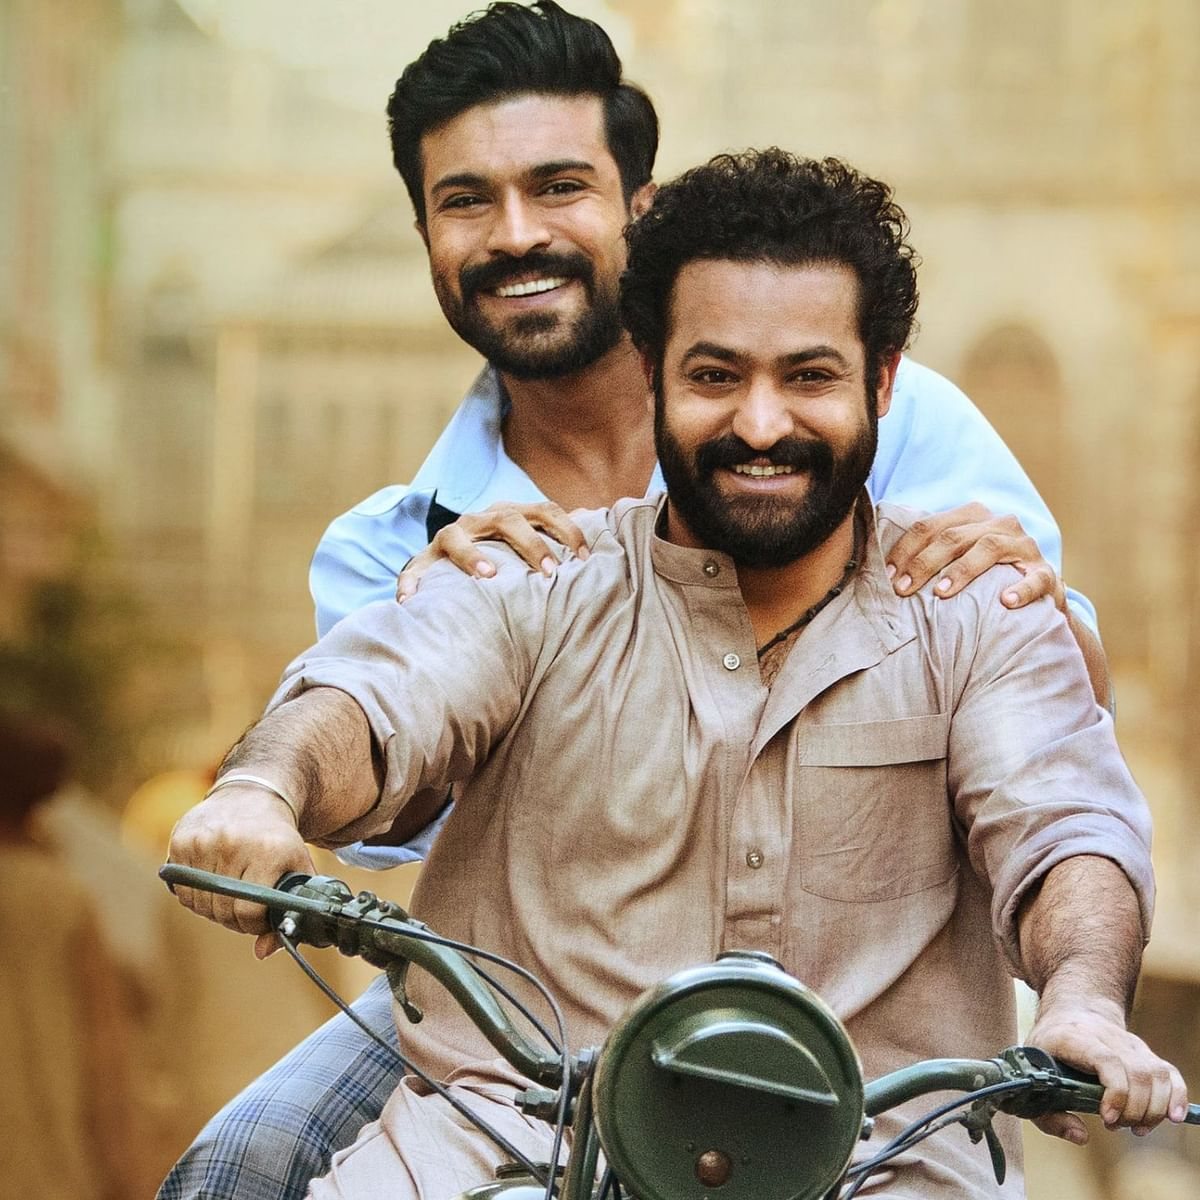 SS Rajamouli's 'RRR' shoot 'moving at rapid pace', makers share new poster featuring Jr NTR and Ram Charan